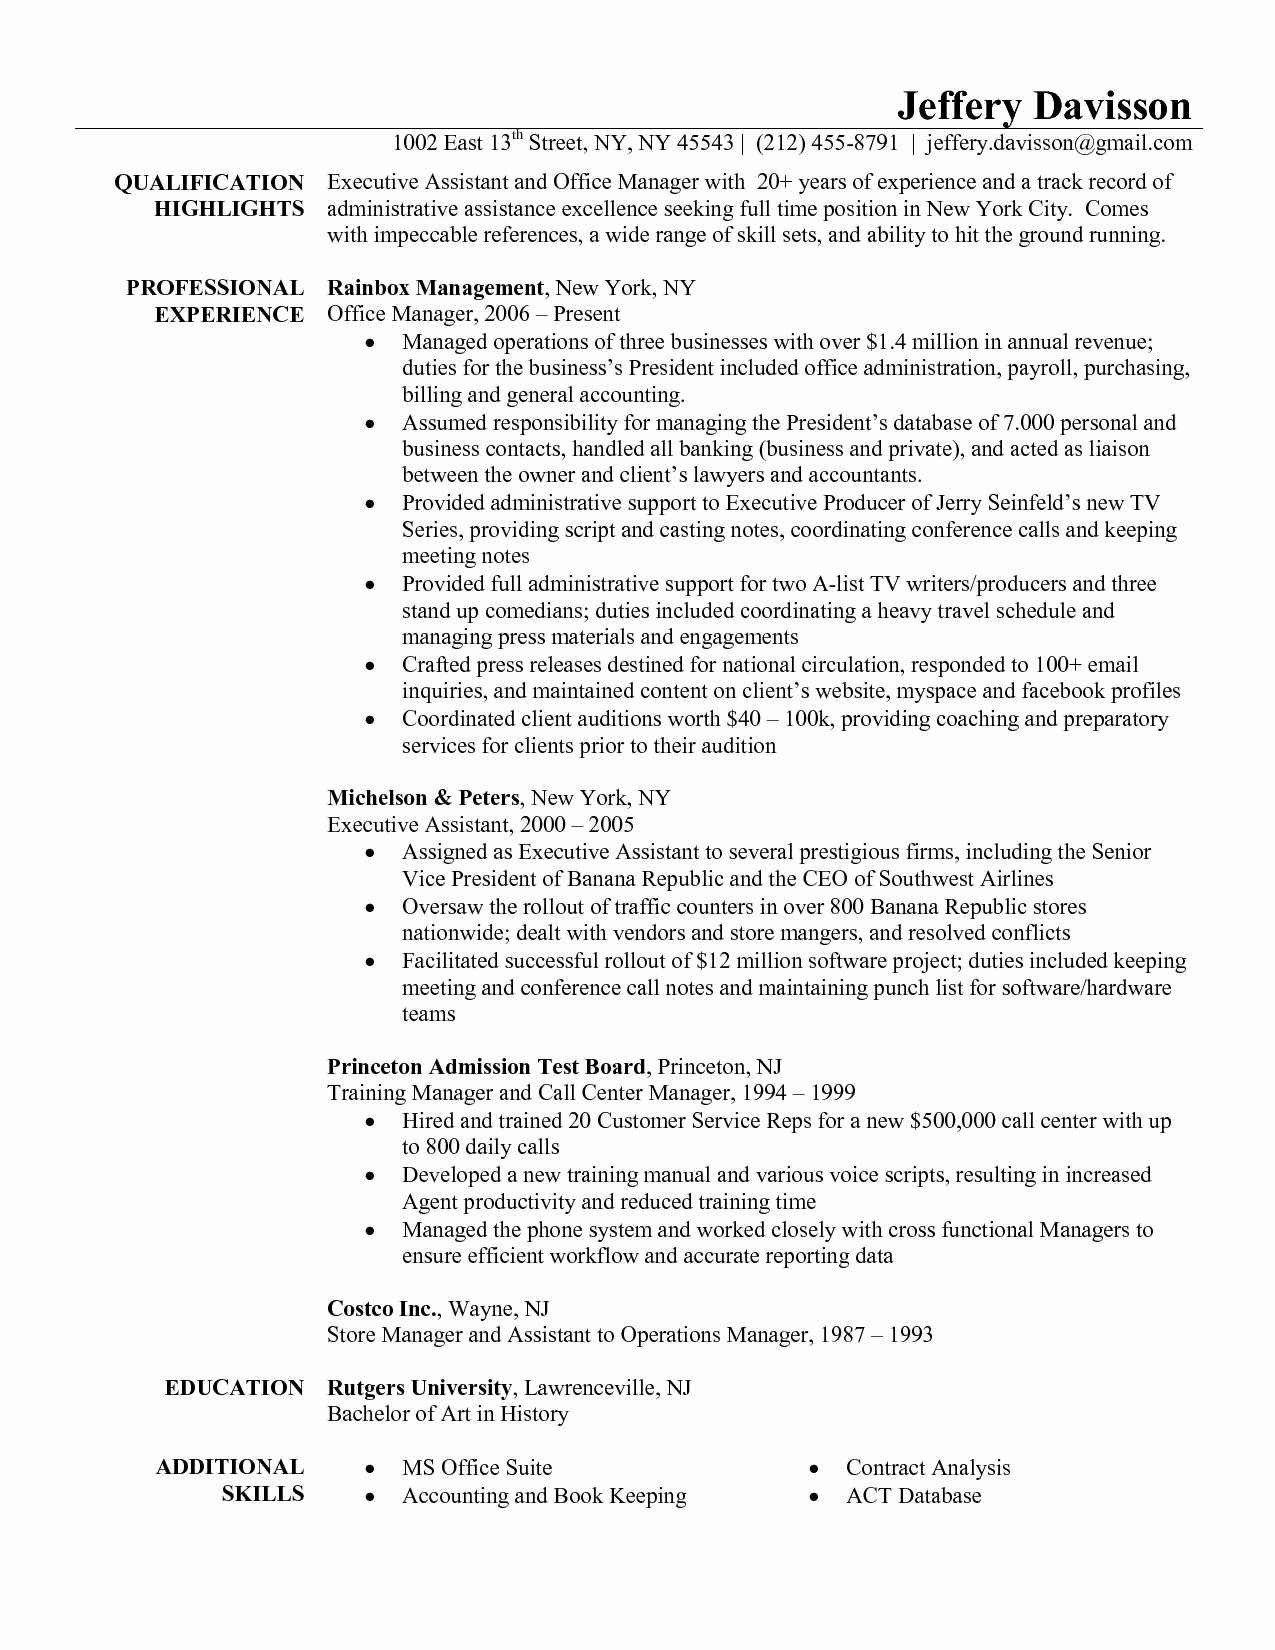 Medical Office Manager Resume Example - Medical Fice Manager Resume Samples Valid Resume for Fice Manager